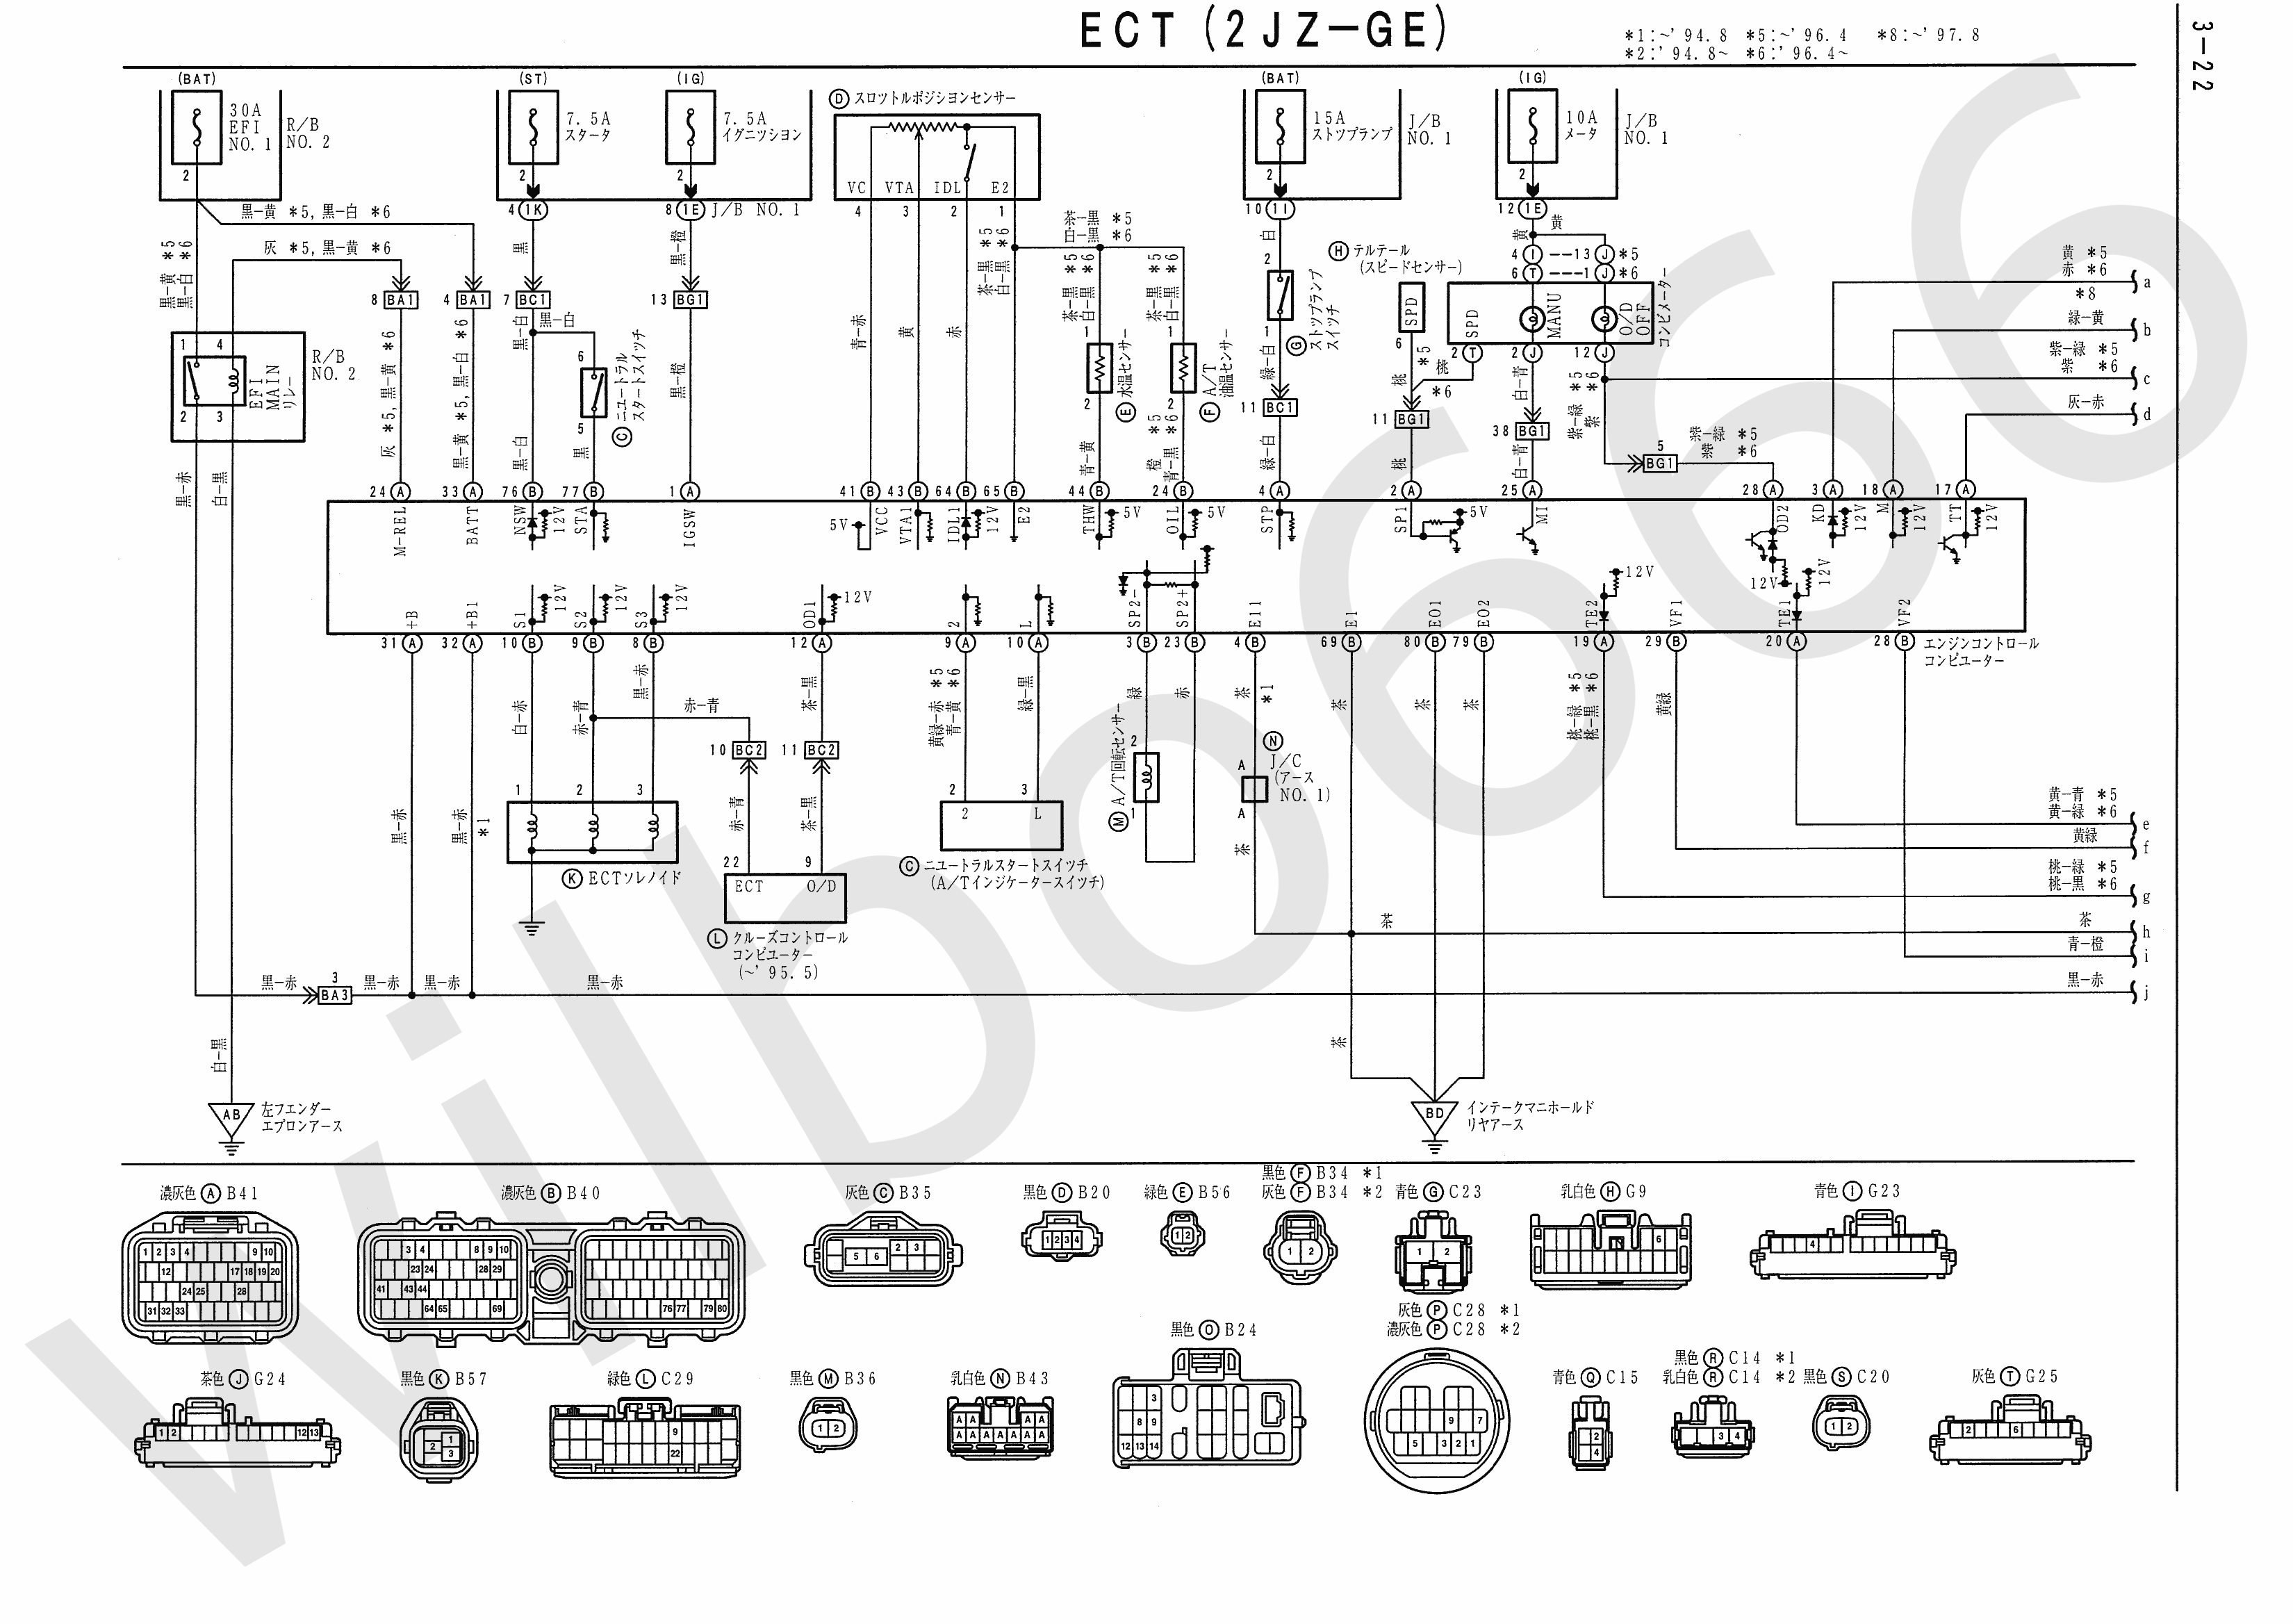 Wiring Diagram 1998 Volvo Wg64 Simple Detailed Truck Ht14x19 100 Lcd Screen Diagramx U2022 Cita Asia 1997 Dump